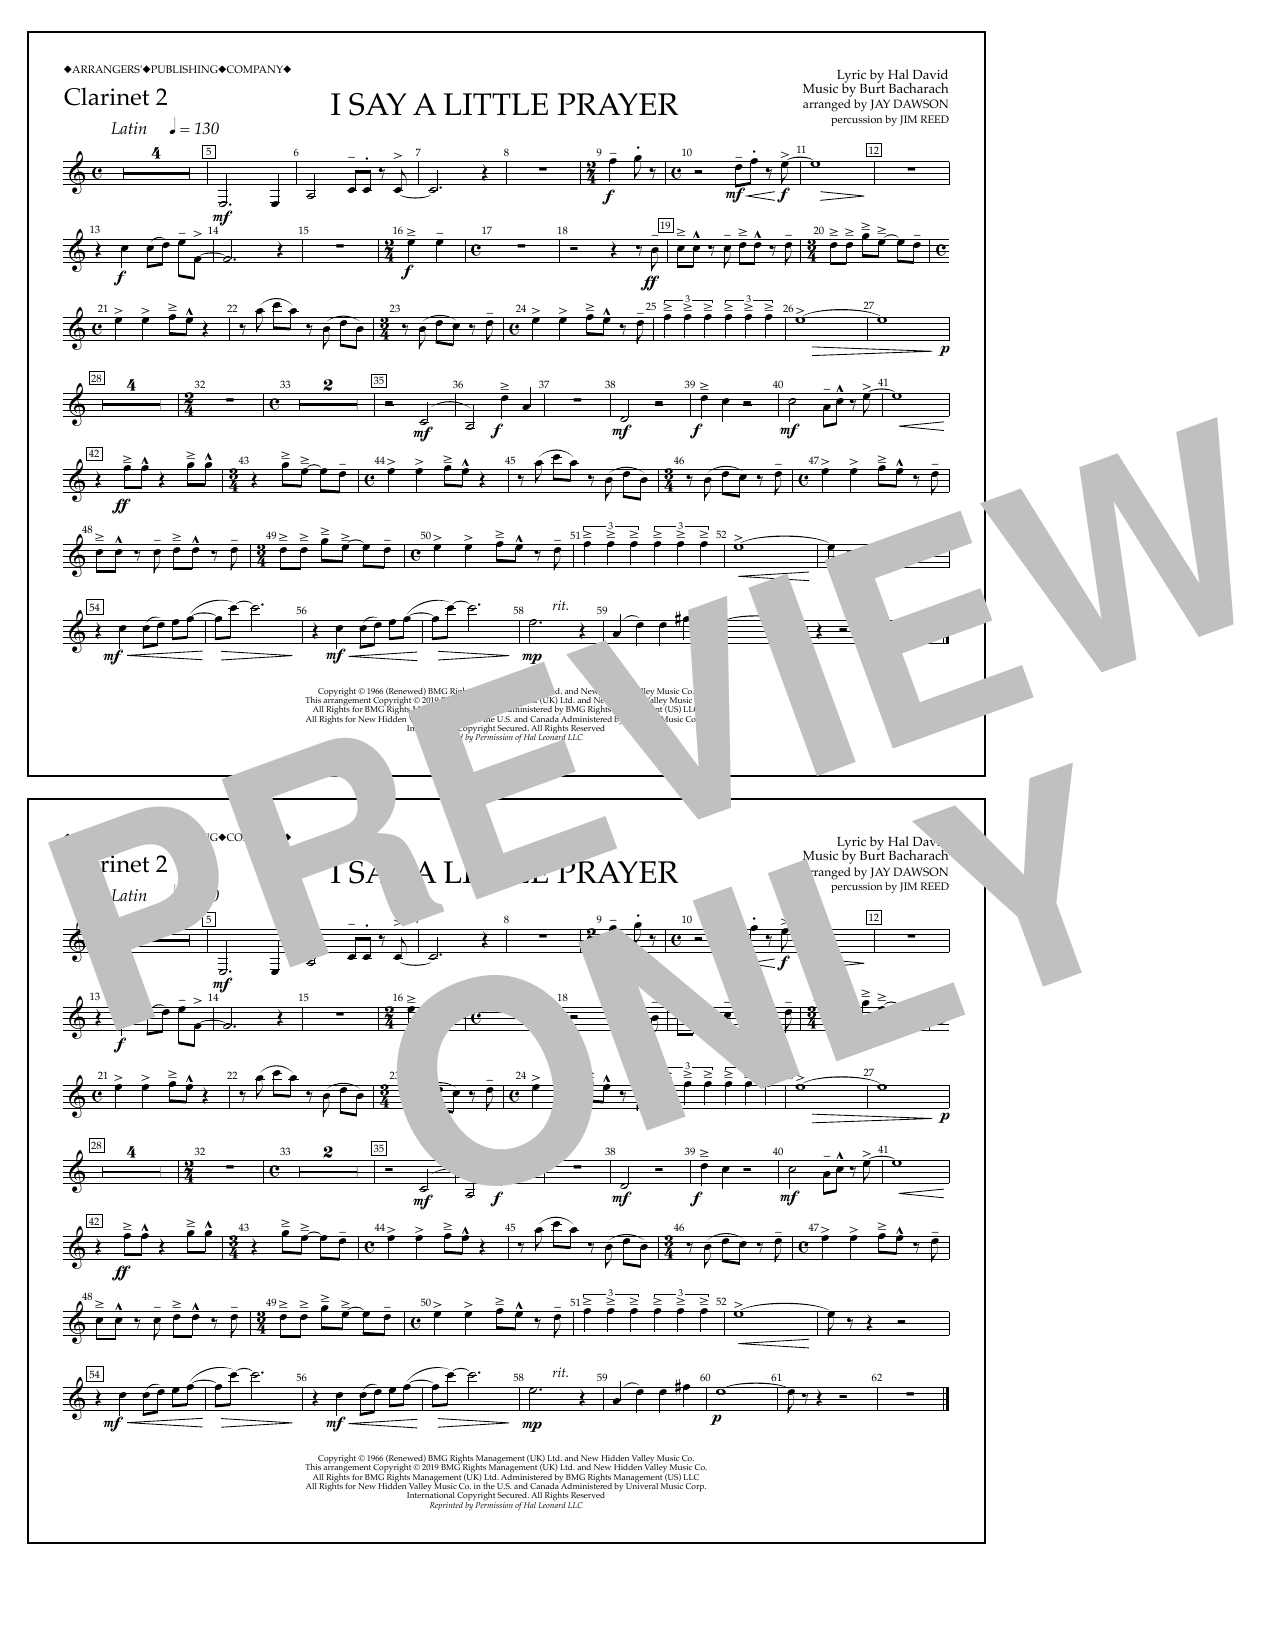 Aretha Franklin I Say a Little Prayer (arr. Jay Dawson) - Clarinet 2 sheet music notes and chords